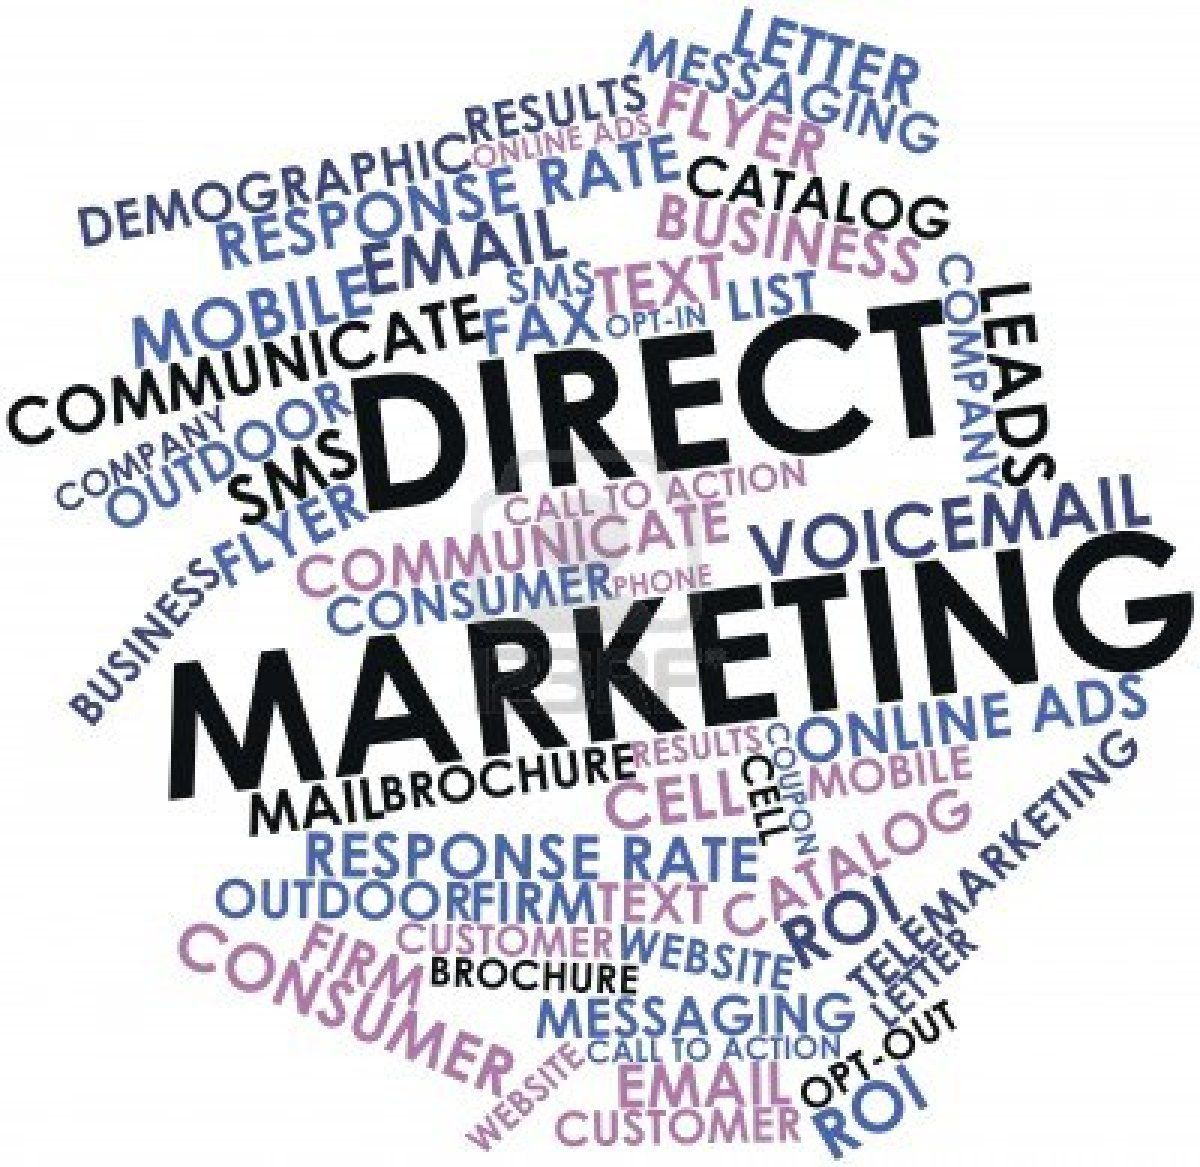 Advertising And Promotional Mugs In Montebello California Mail: The Exploding Importance Of Direct Marketing